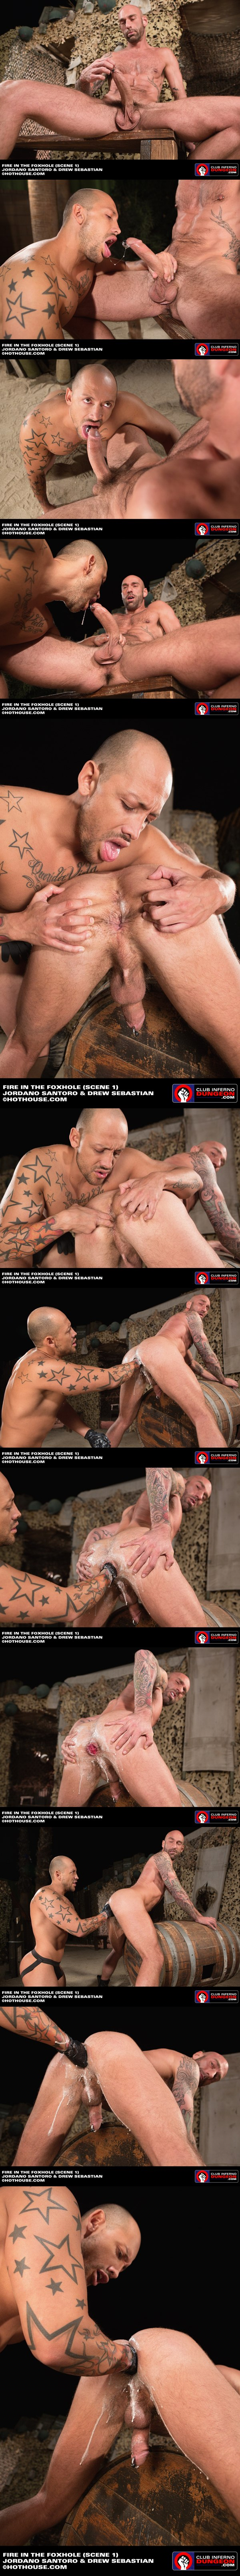 Muscular Jordano Santoro Double Fisting big-dicked rugged Drew Sebastian at Clubinfernodungeon 01